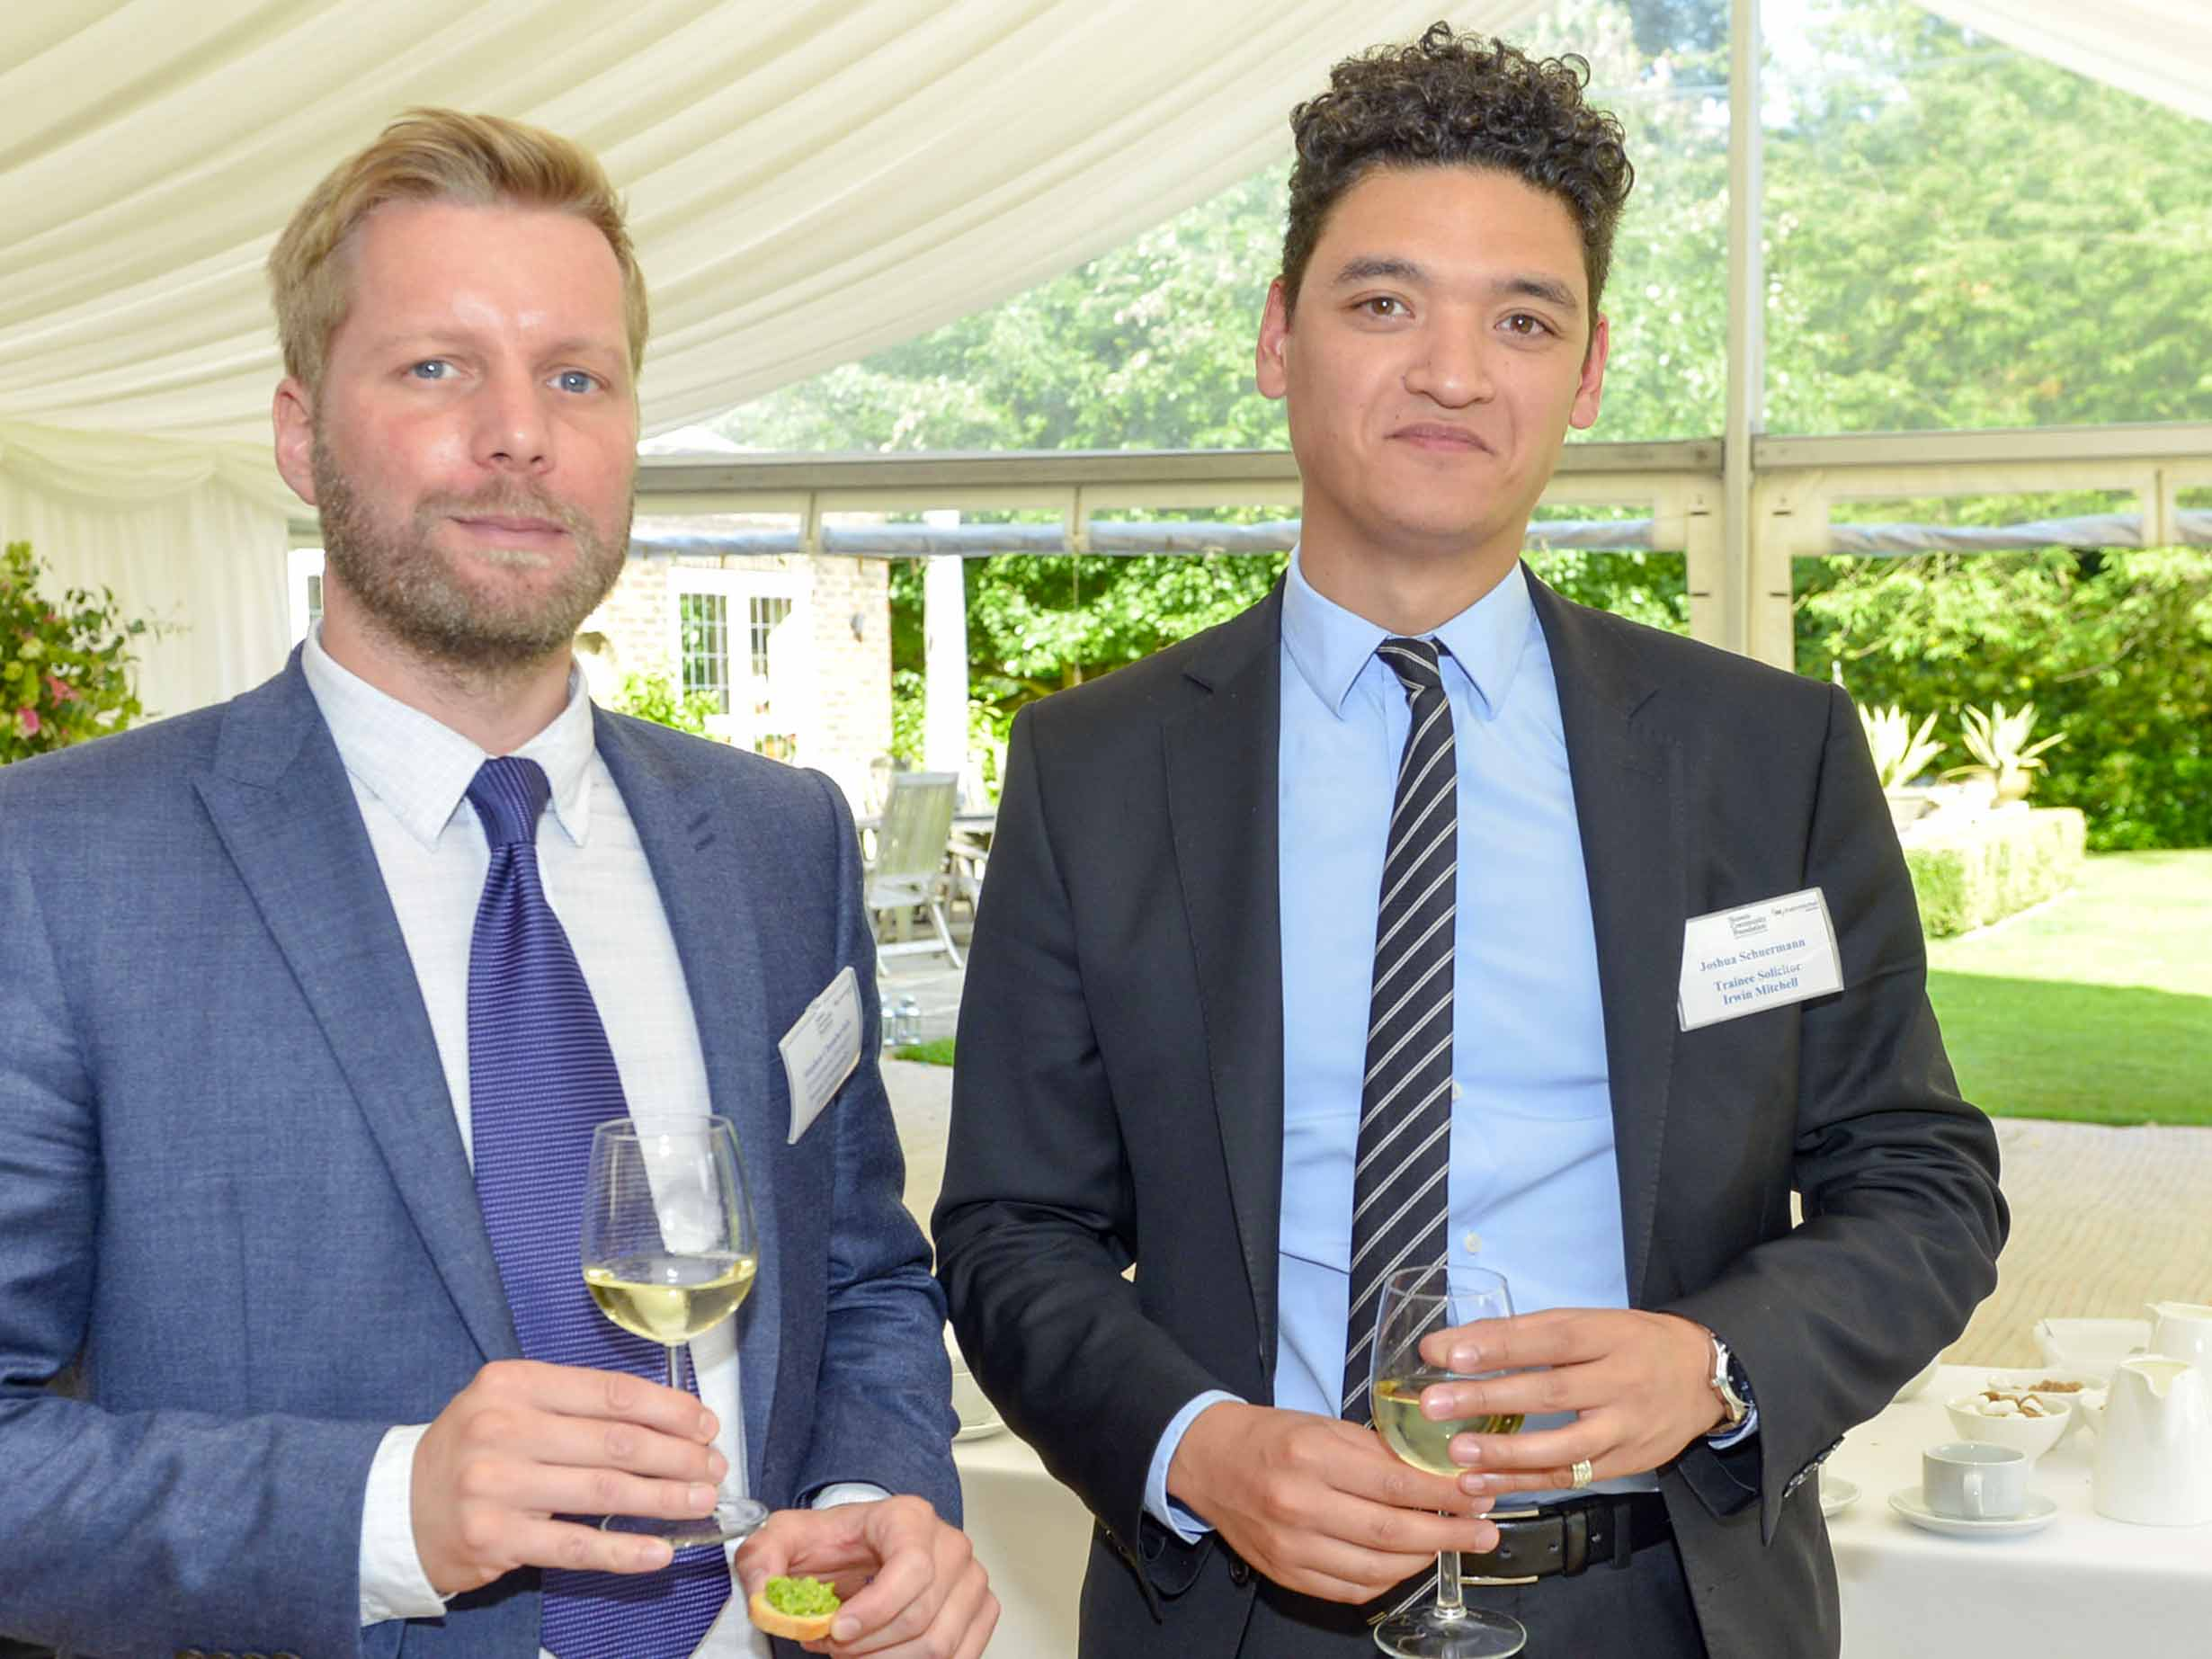 Professional advisors and Stephen at an event in the summer